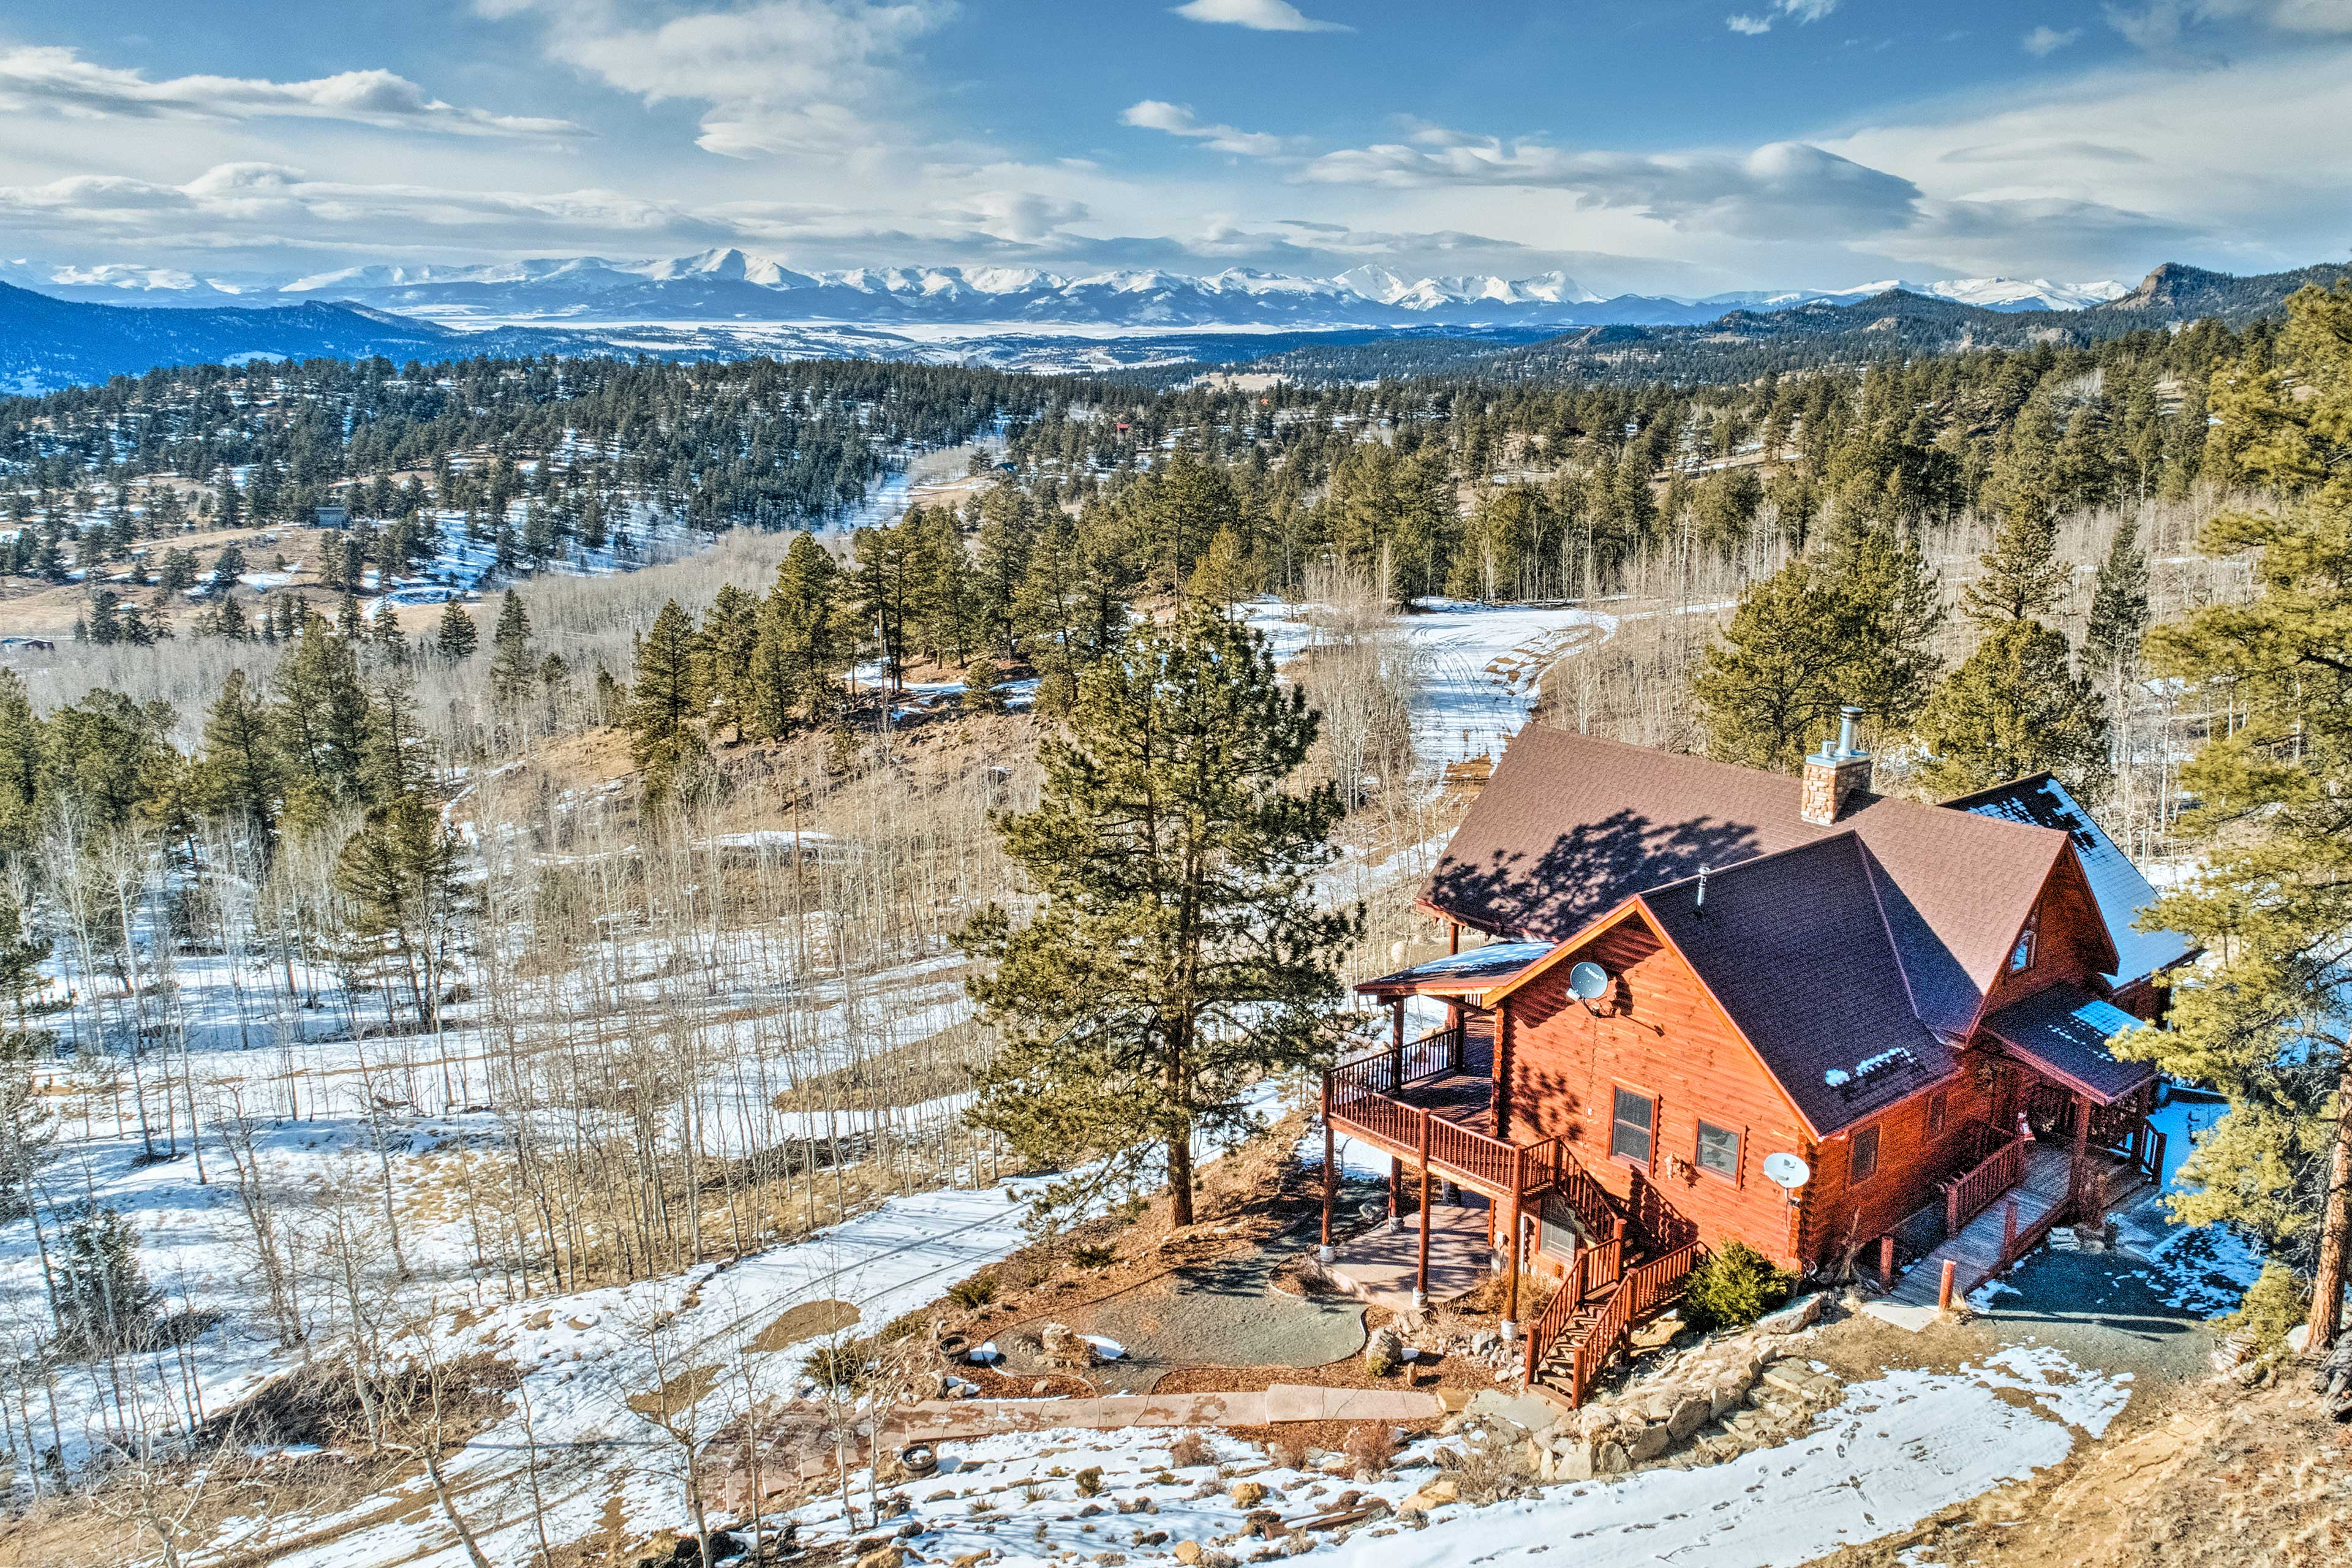 The property offers stunning views year-round.